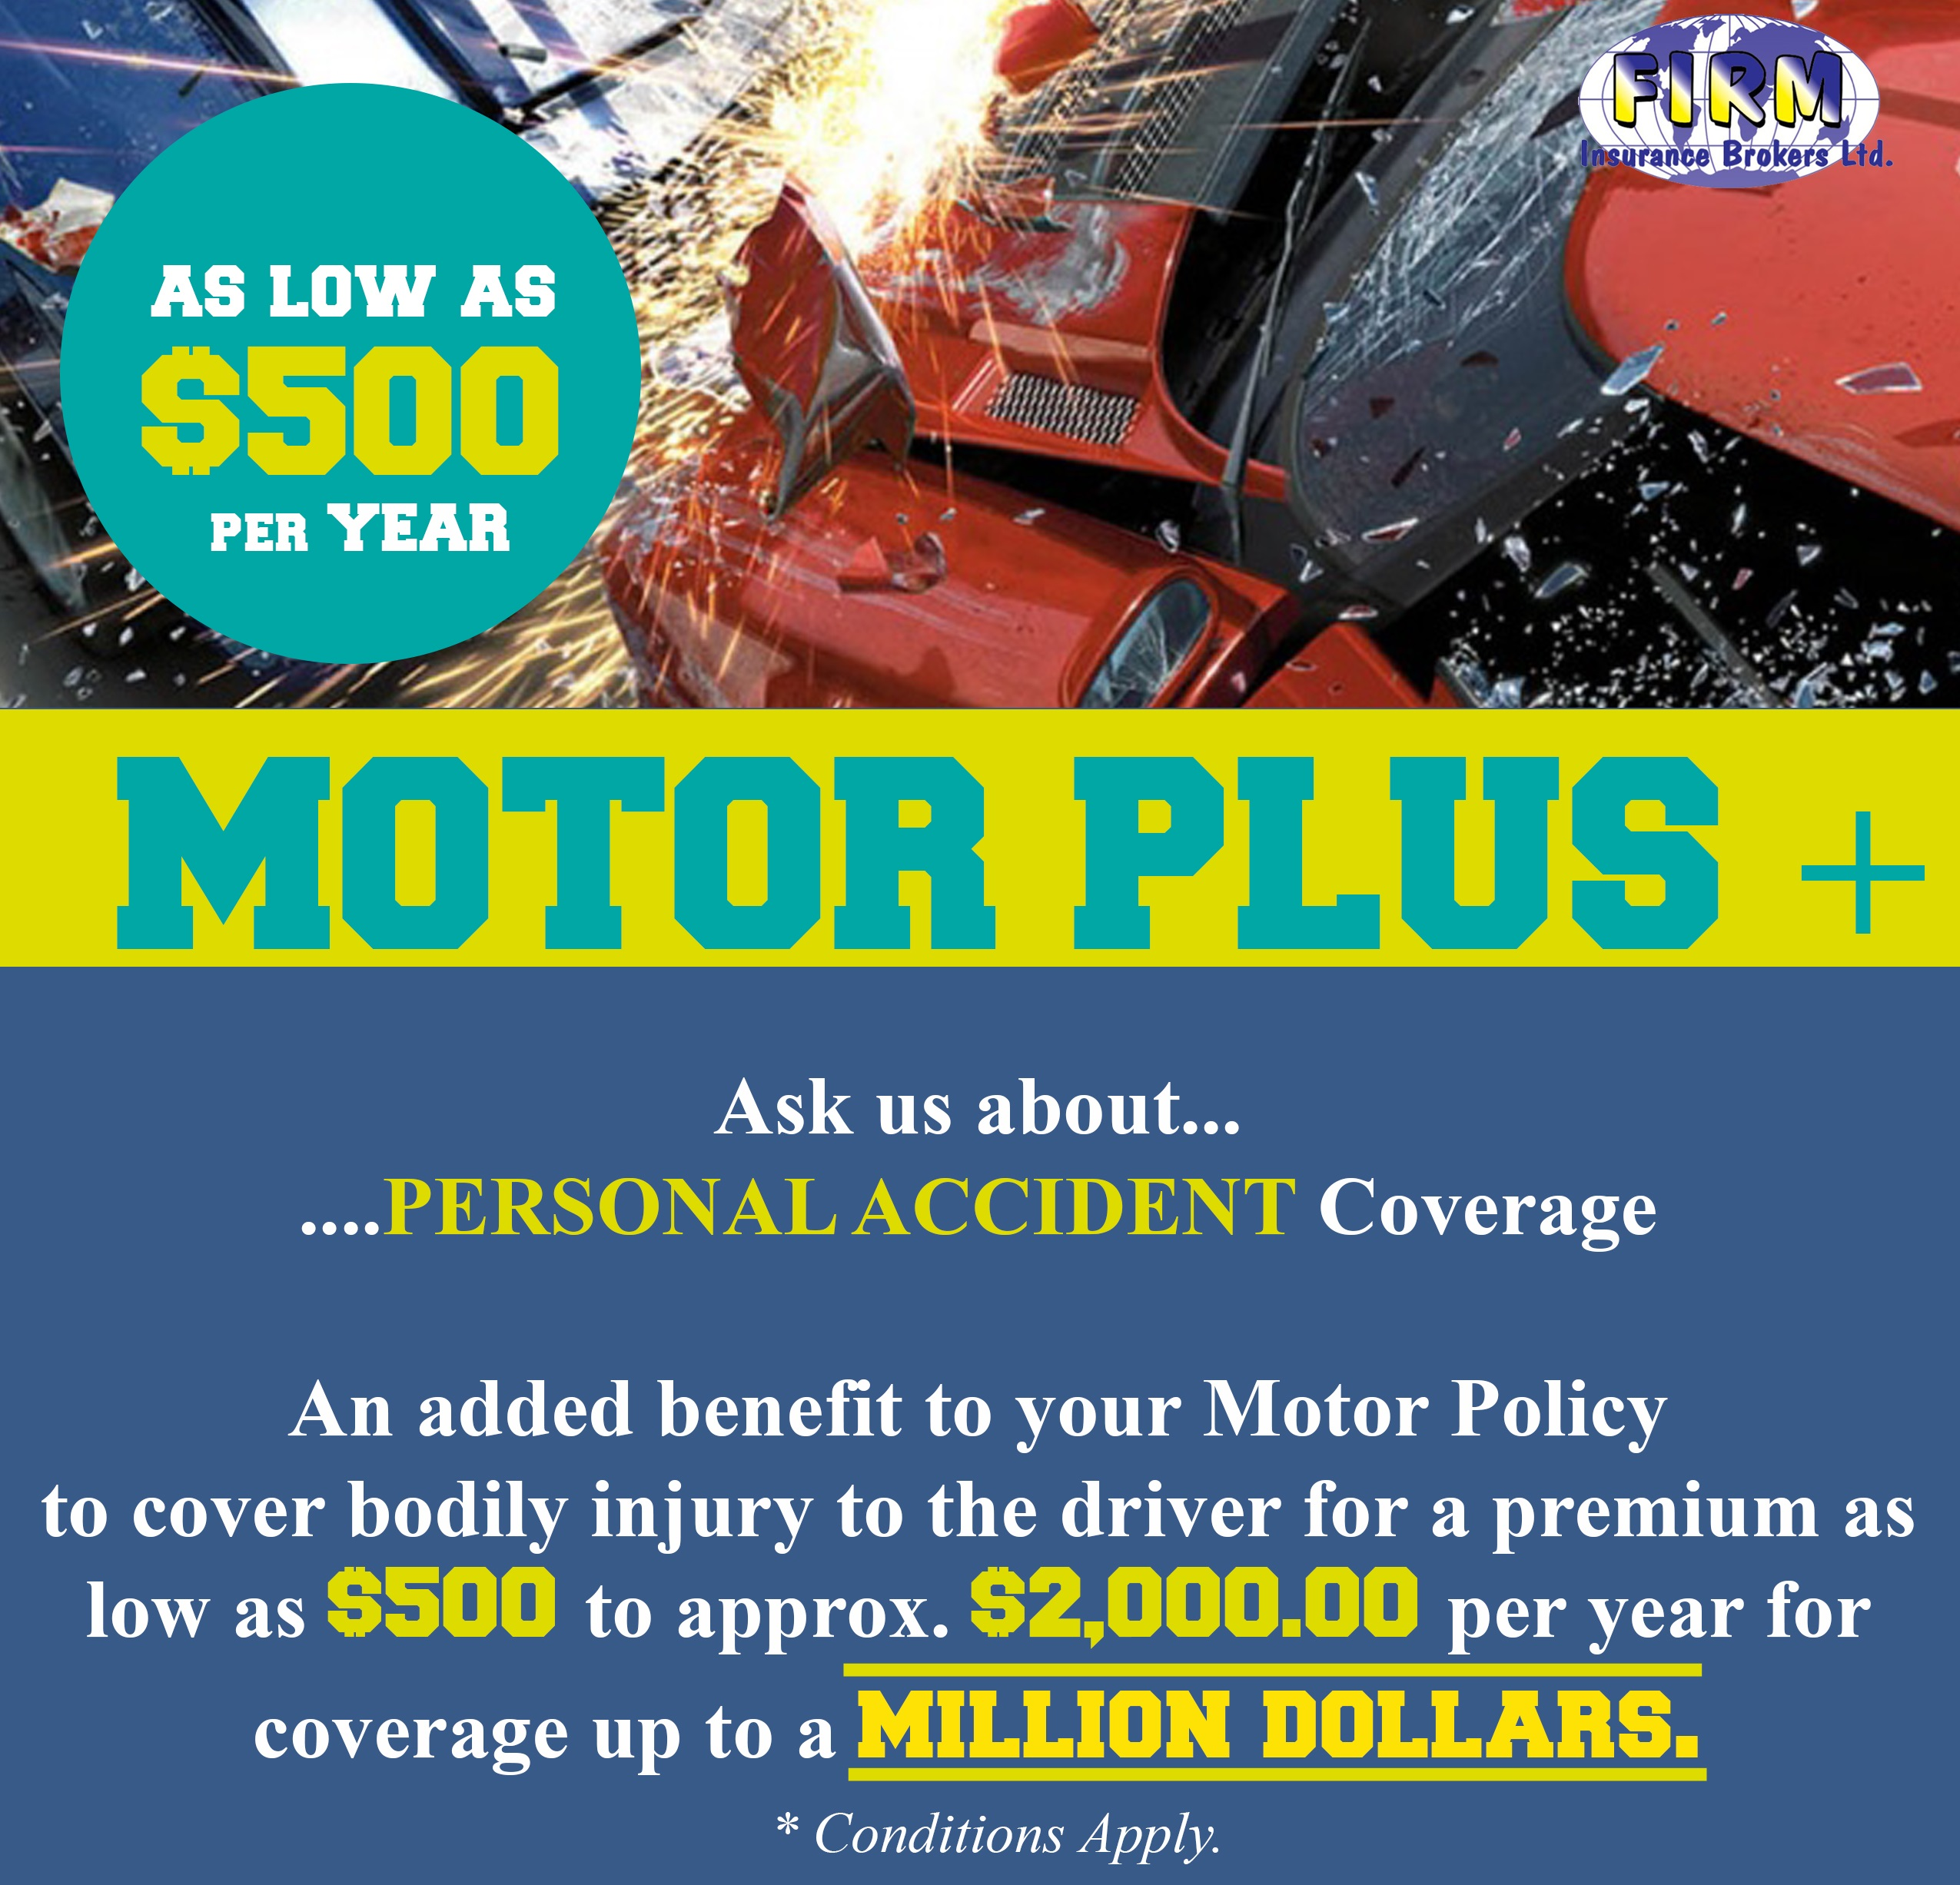 Motor Plus - Personal Accident Insurance